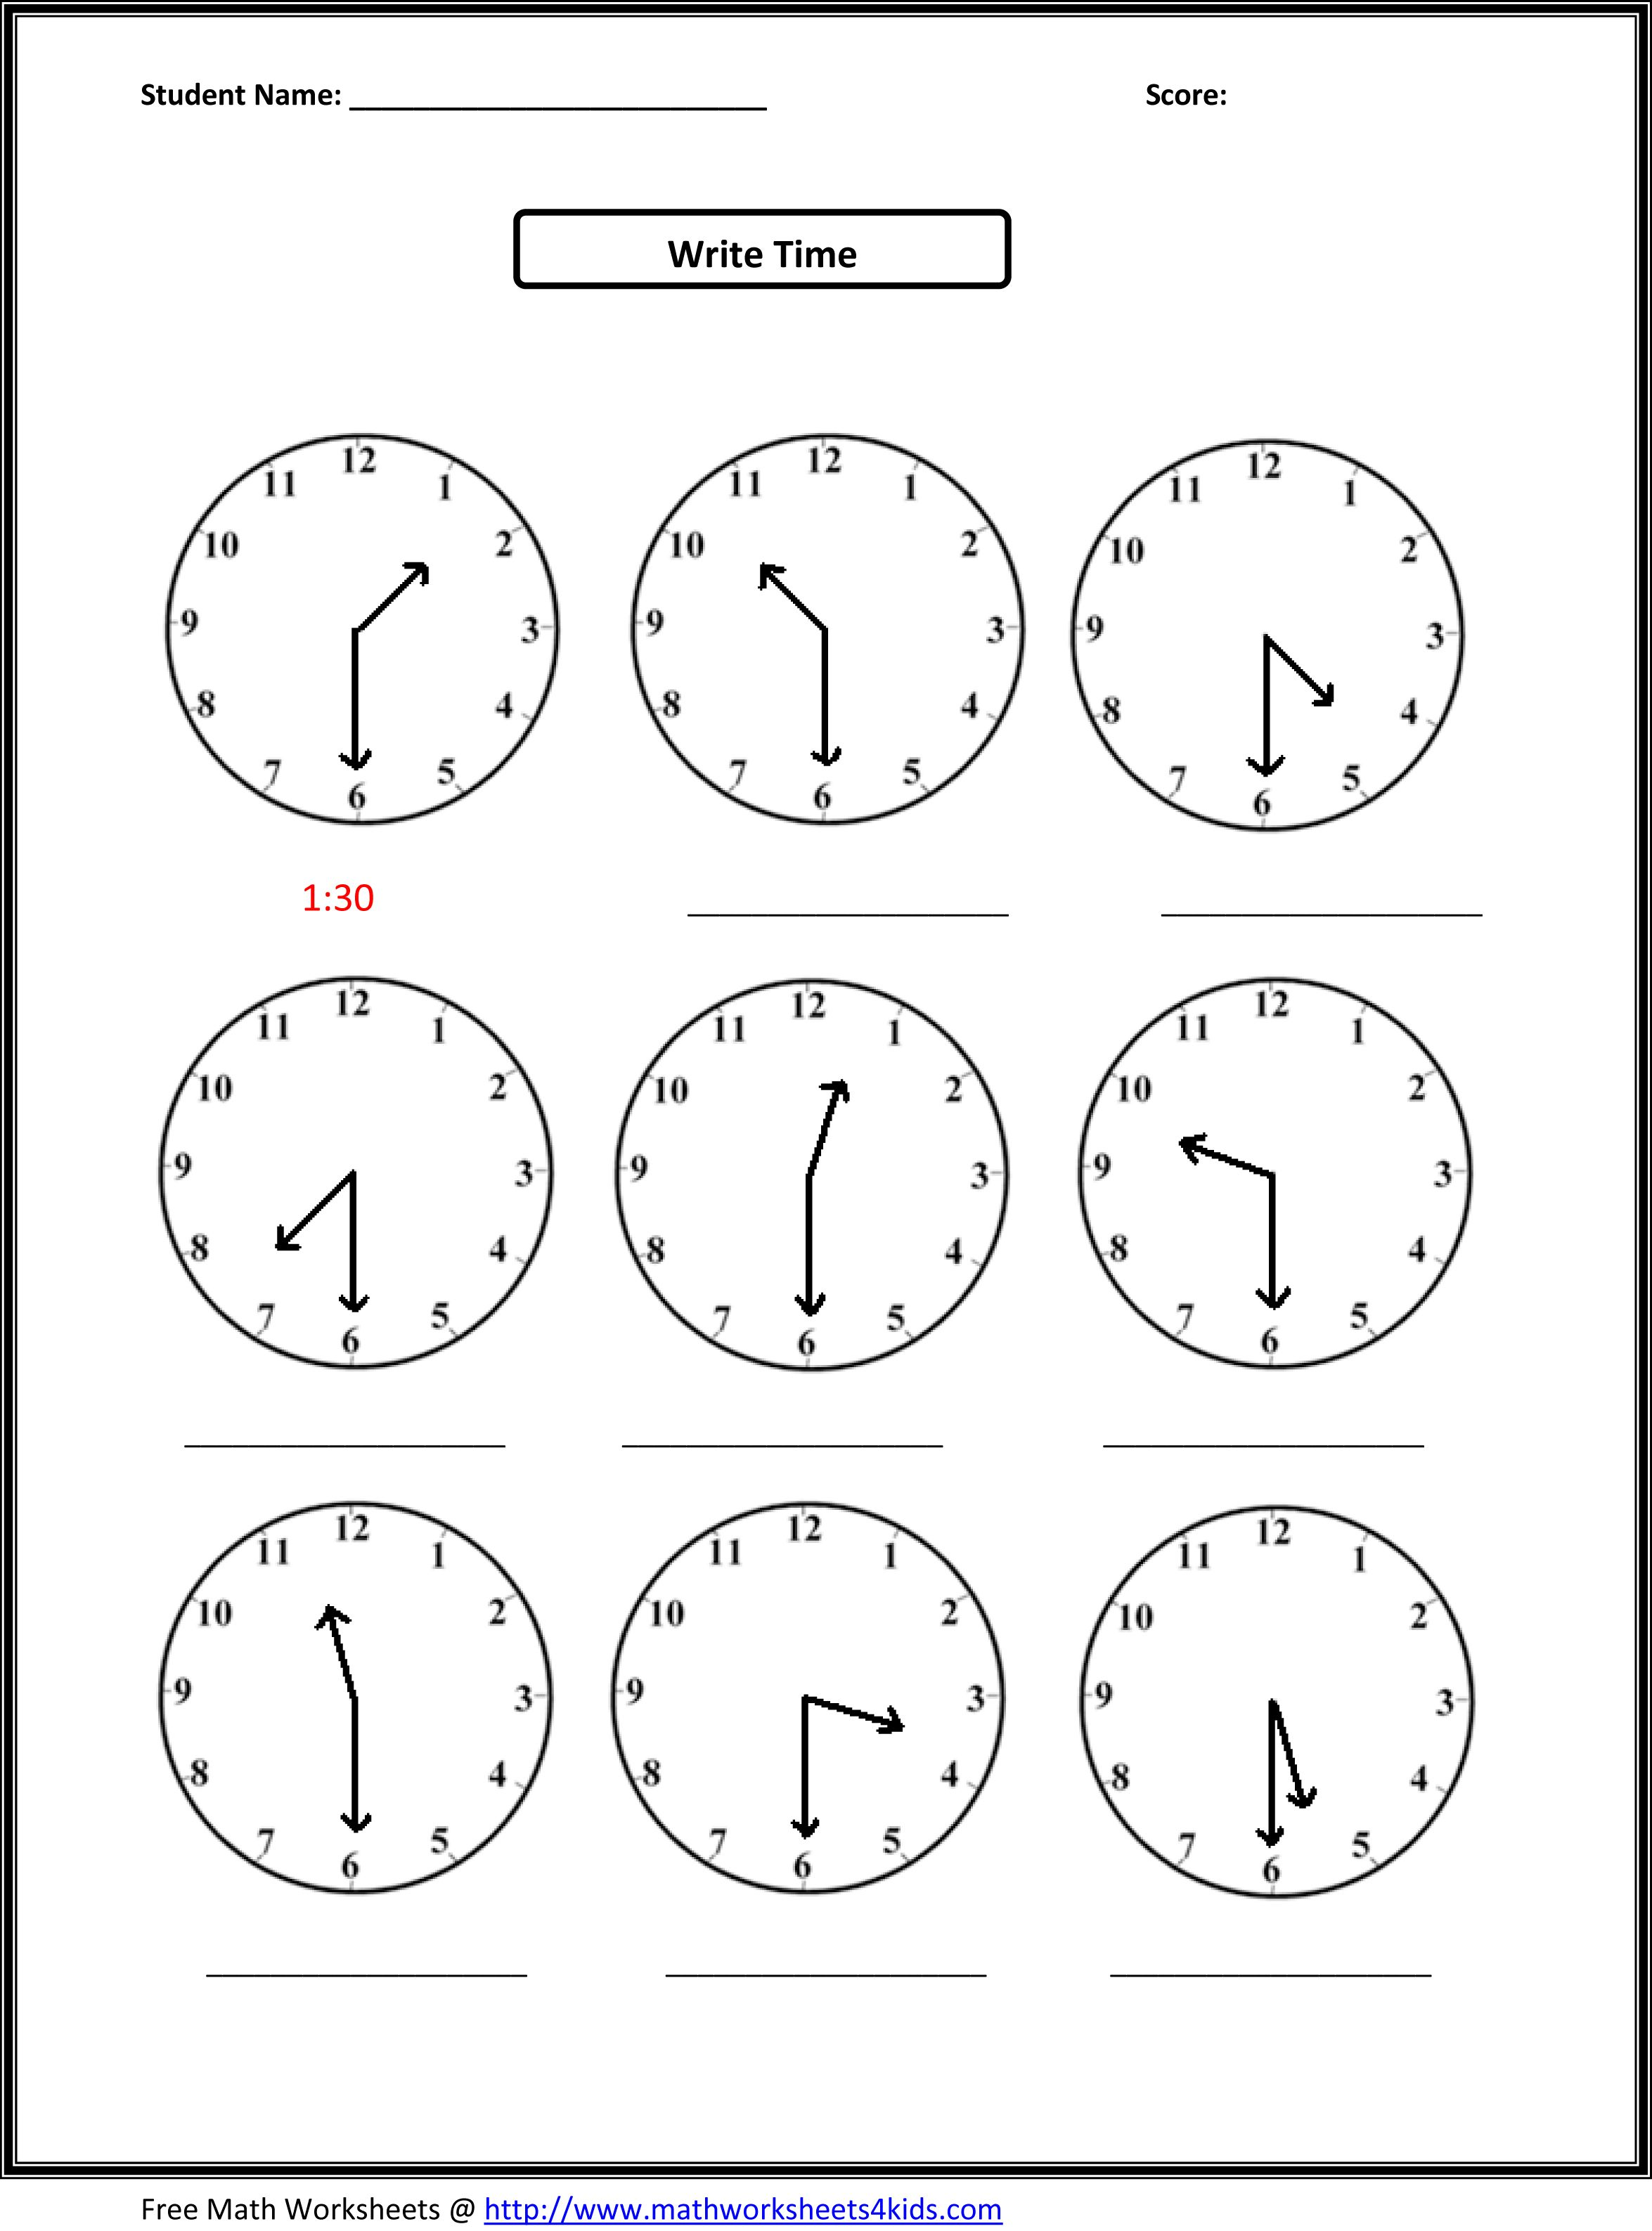 Proatmealus  Picturesque Worksheet On Time For Grade   Reocurent With Fetching Free Printable Telling Time Worksheets Nd Grade  Reocurent With Comely Simple Sentences For Kids Worksheets Also Time Filler Worksheets In Addition Math Today Worksheets And Preschool Letter Q Worksheets As Well As Worksheets To Help With Reading Additionally Esl Adjectives Worksheets From Reocurentcom With Proatmealus  Fetching Worksheet On Time For Grade   Reocurent With Comely Free Printable Telling Time Worksheets Nd Grade  Reocurent And Picturesque Simple Sentences For Kids Worksheets Also Time Filler Worksheets In Addition Math Today Worksheets From Reocurentcom